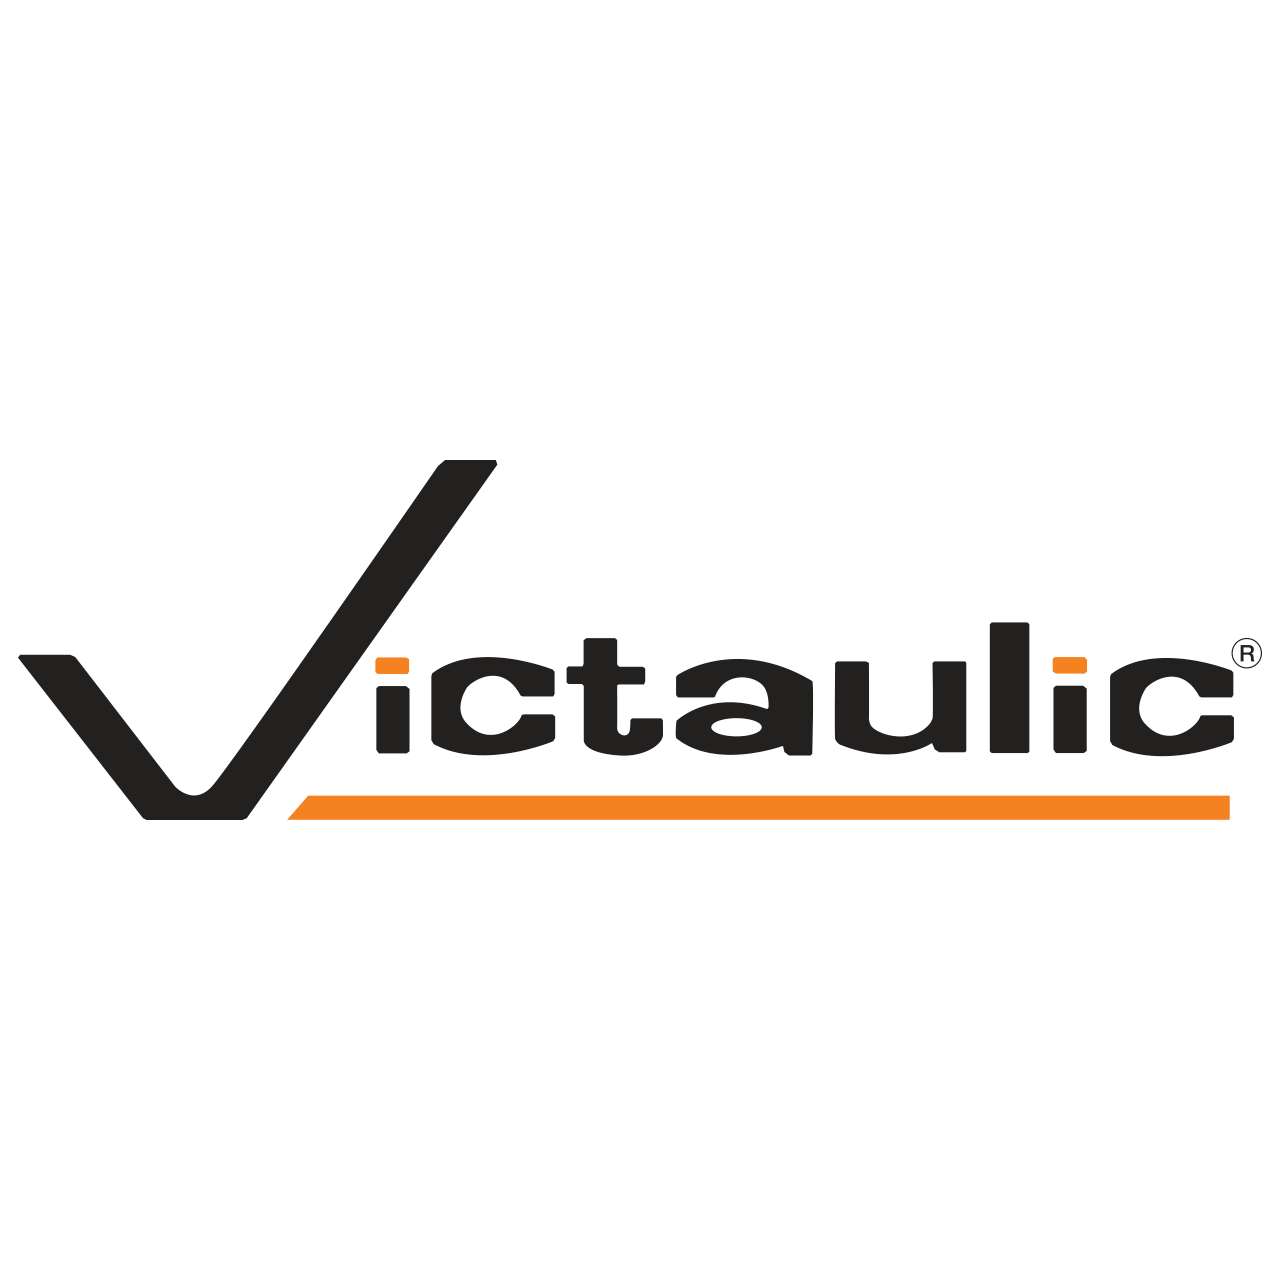 Victaulic's Refuse-to-Fuse makes HDPE pipe fusion a thing of the past